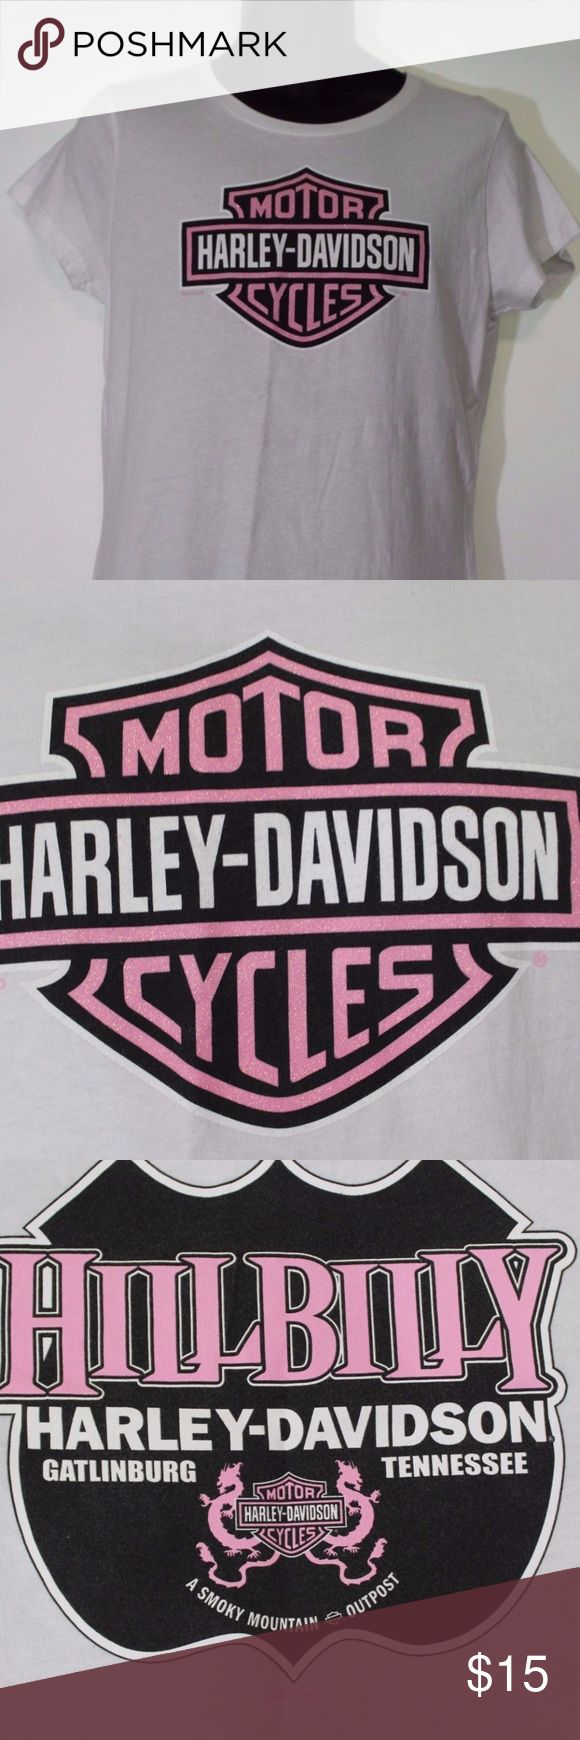 Harley-Davidson-Womens-White-Tee-Shirt-Hill-billy This is a ladies very gently used Harley Davidson white tee shirt  Hillbilly Gatlingburg, TN  Size XL   The shirt measures approx. 17 inches across the chest laying flat  It is 28 inches in length Harley-Davidson Tops Tees - Short Sleeve